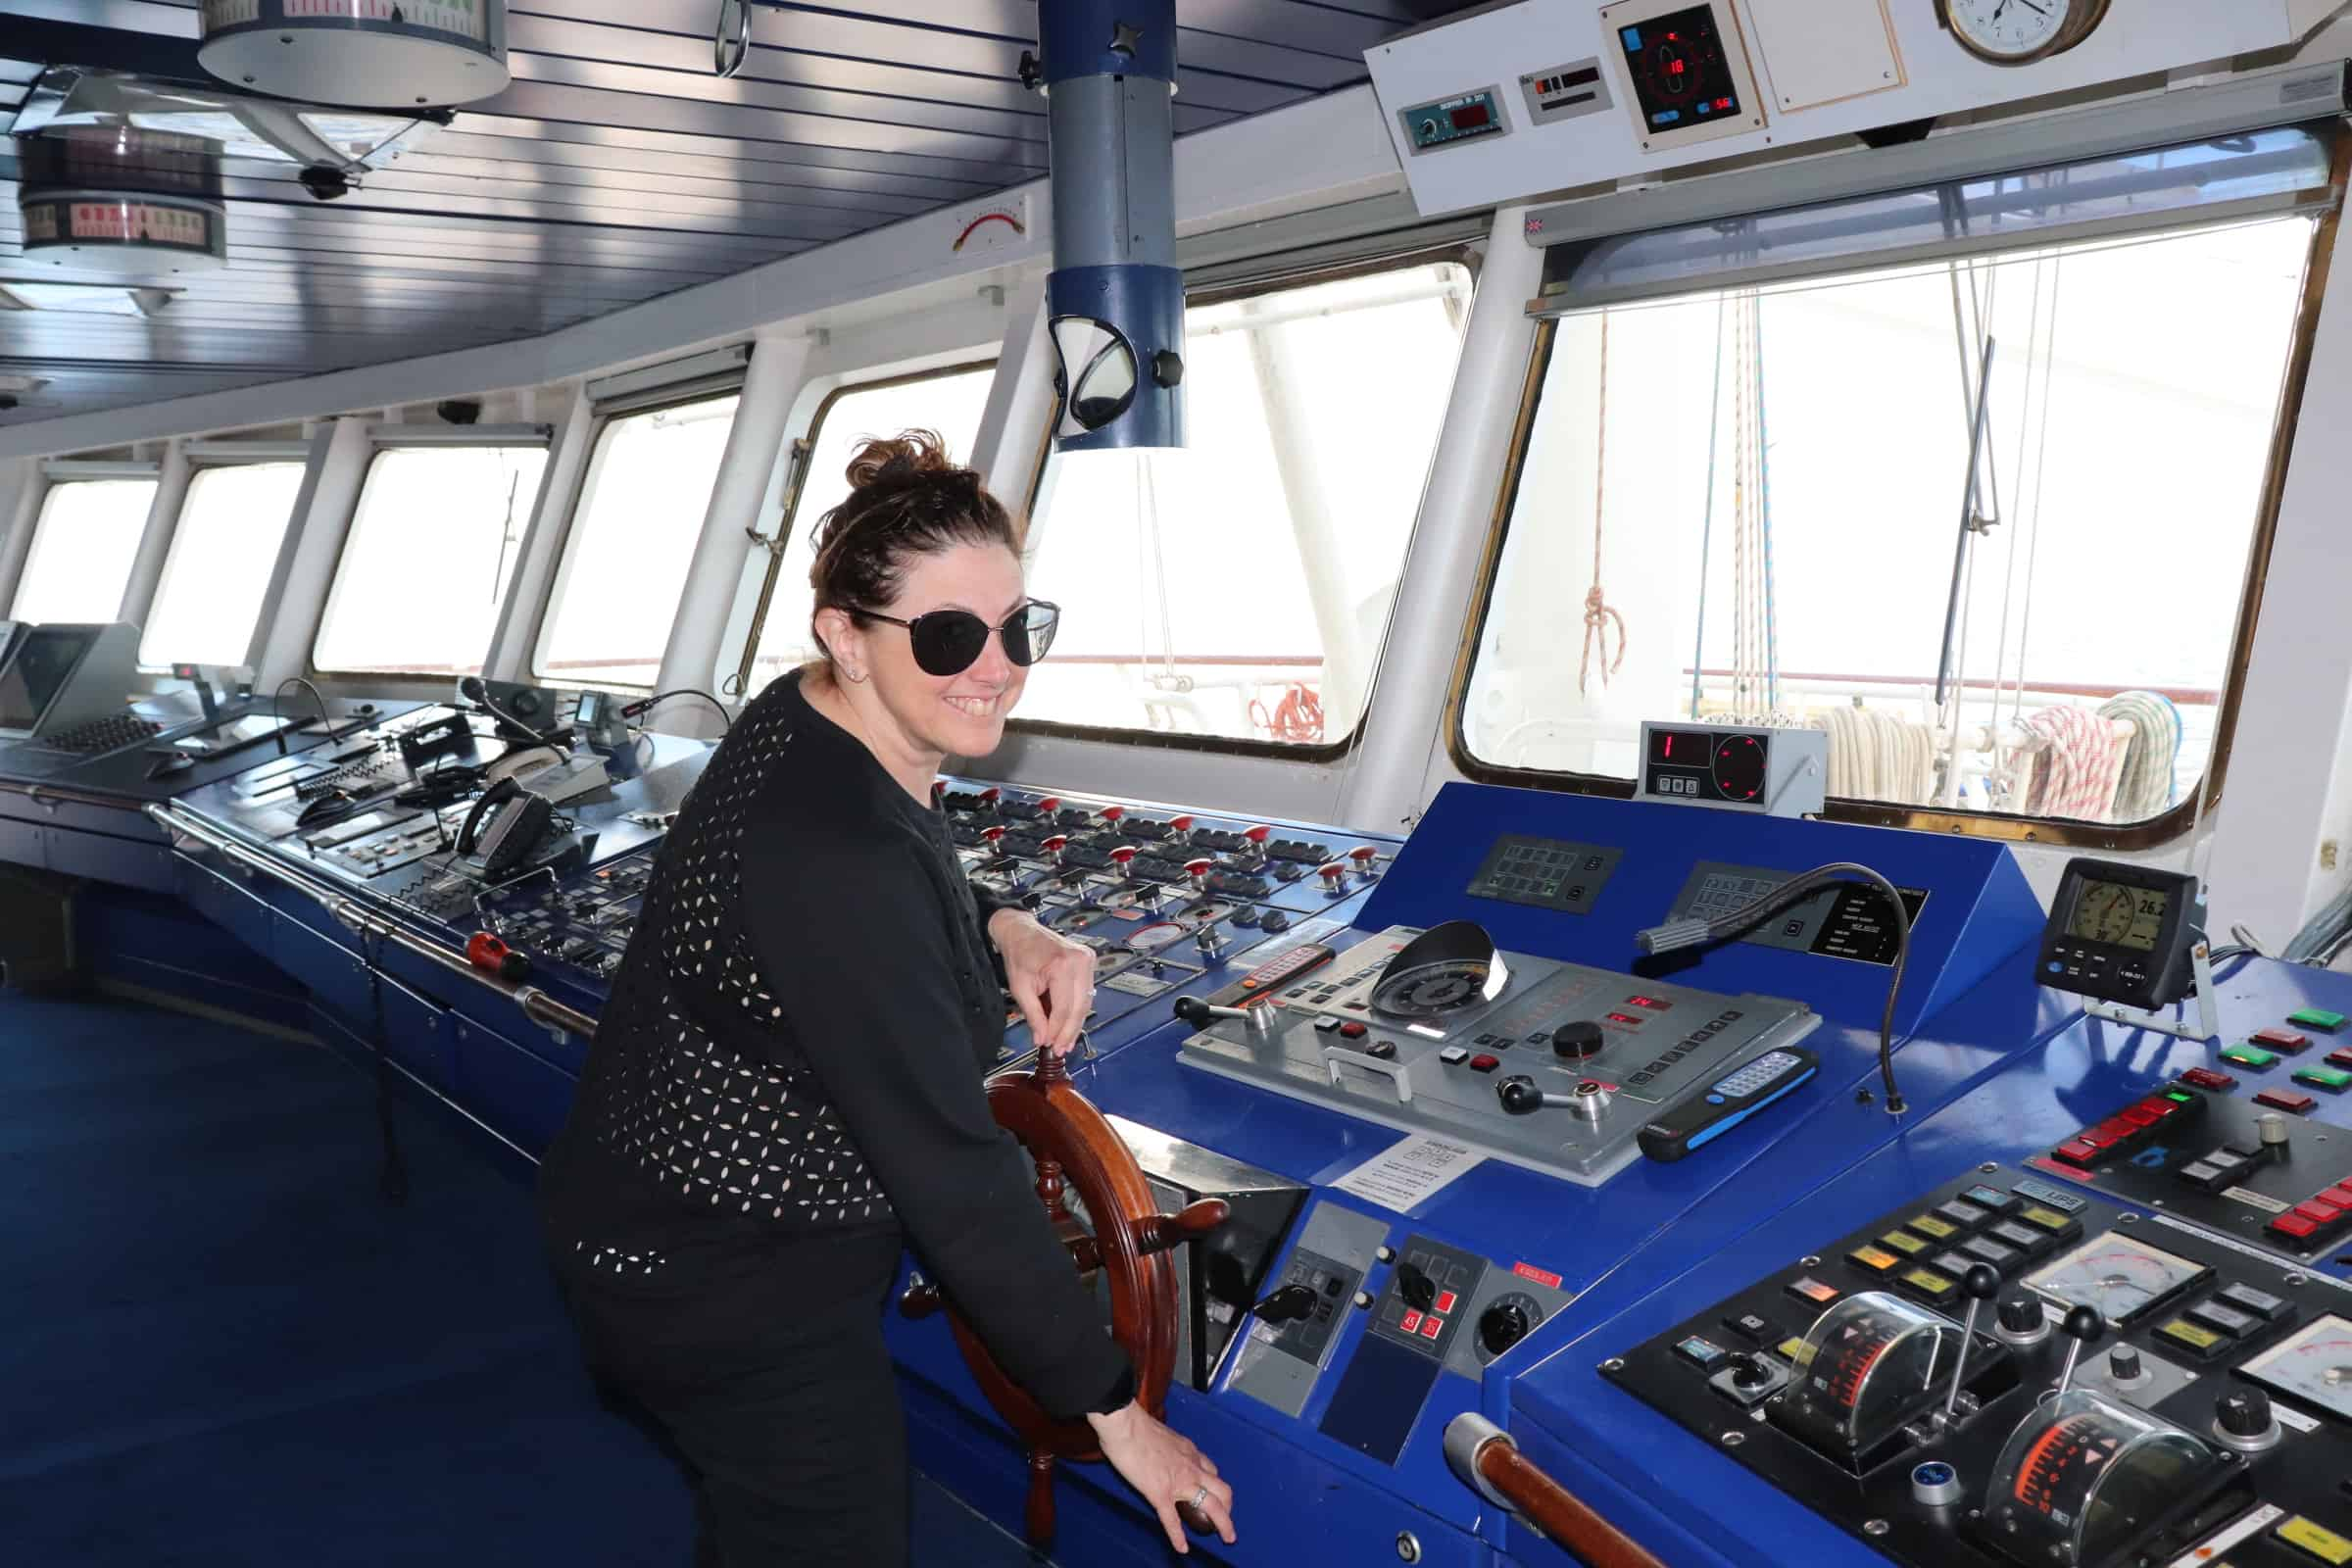 Hilary in the control room of the cruise ship